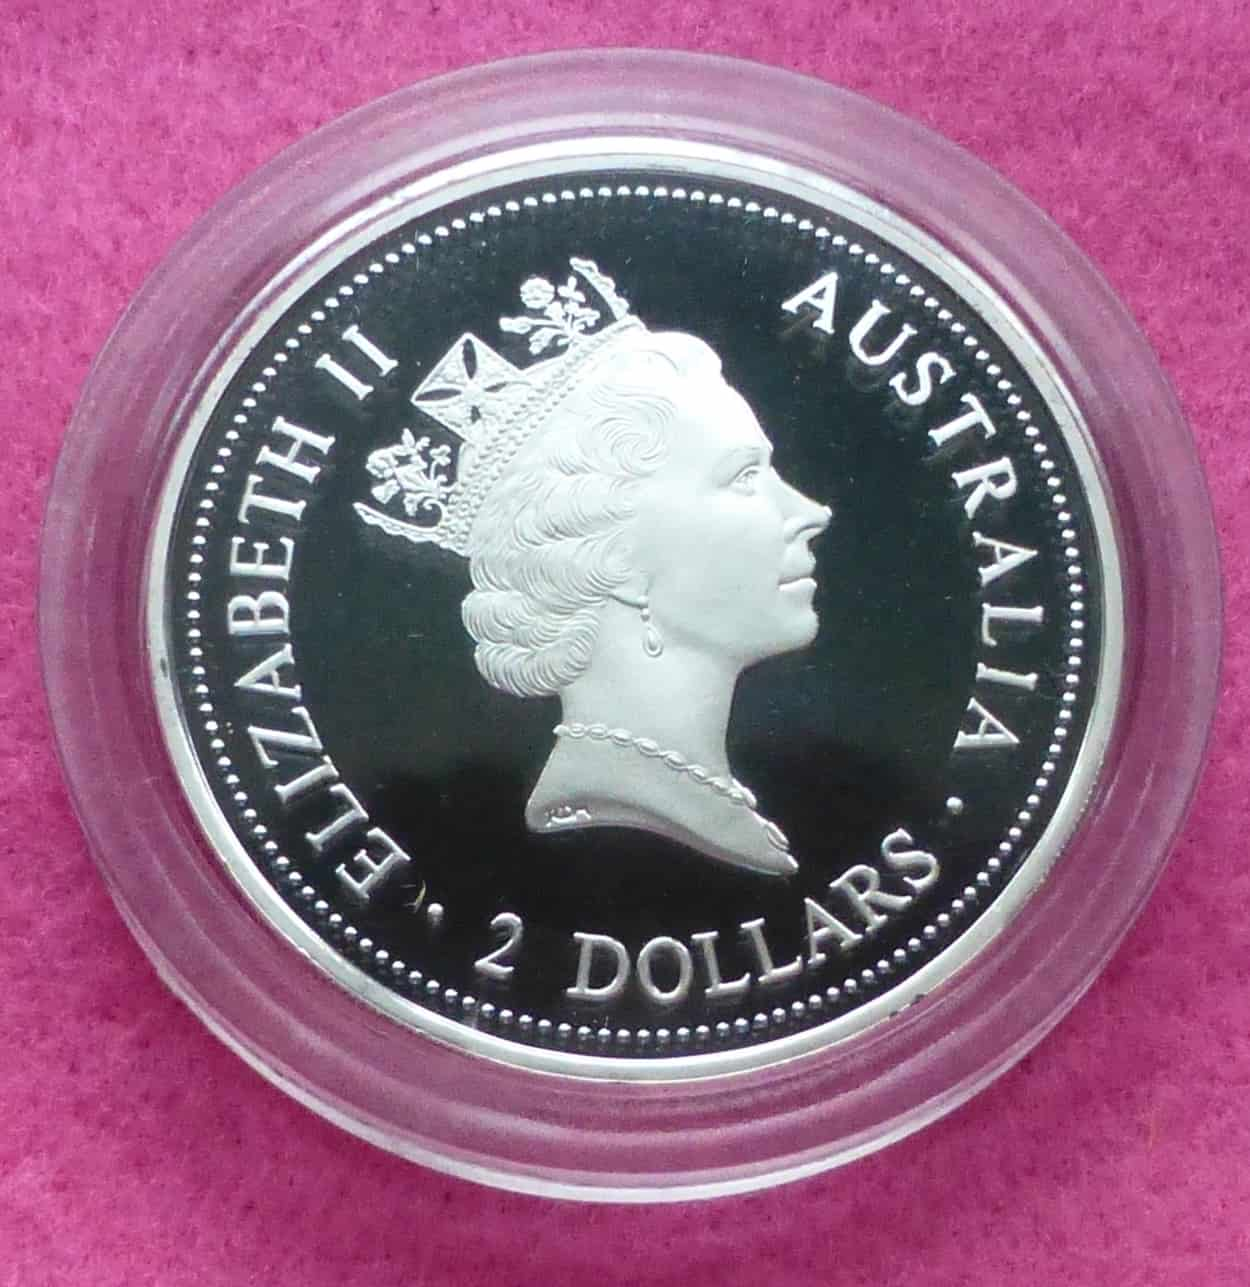 1994 Kookaburra 2oz Silver Proof 2 Two Dollar Coin The